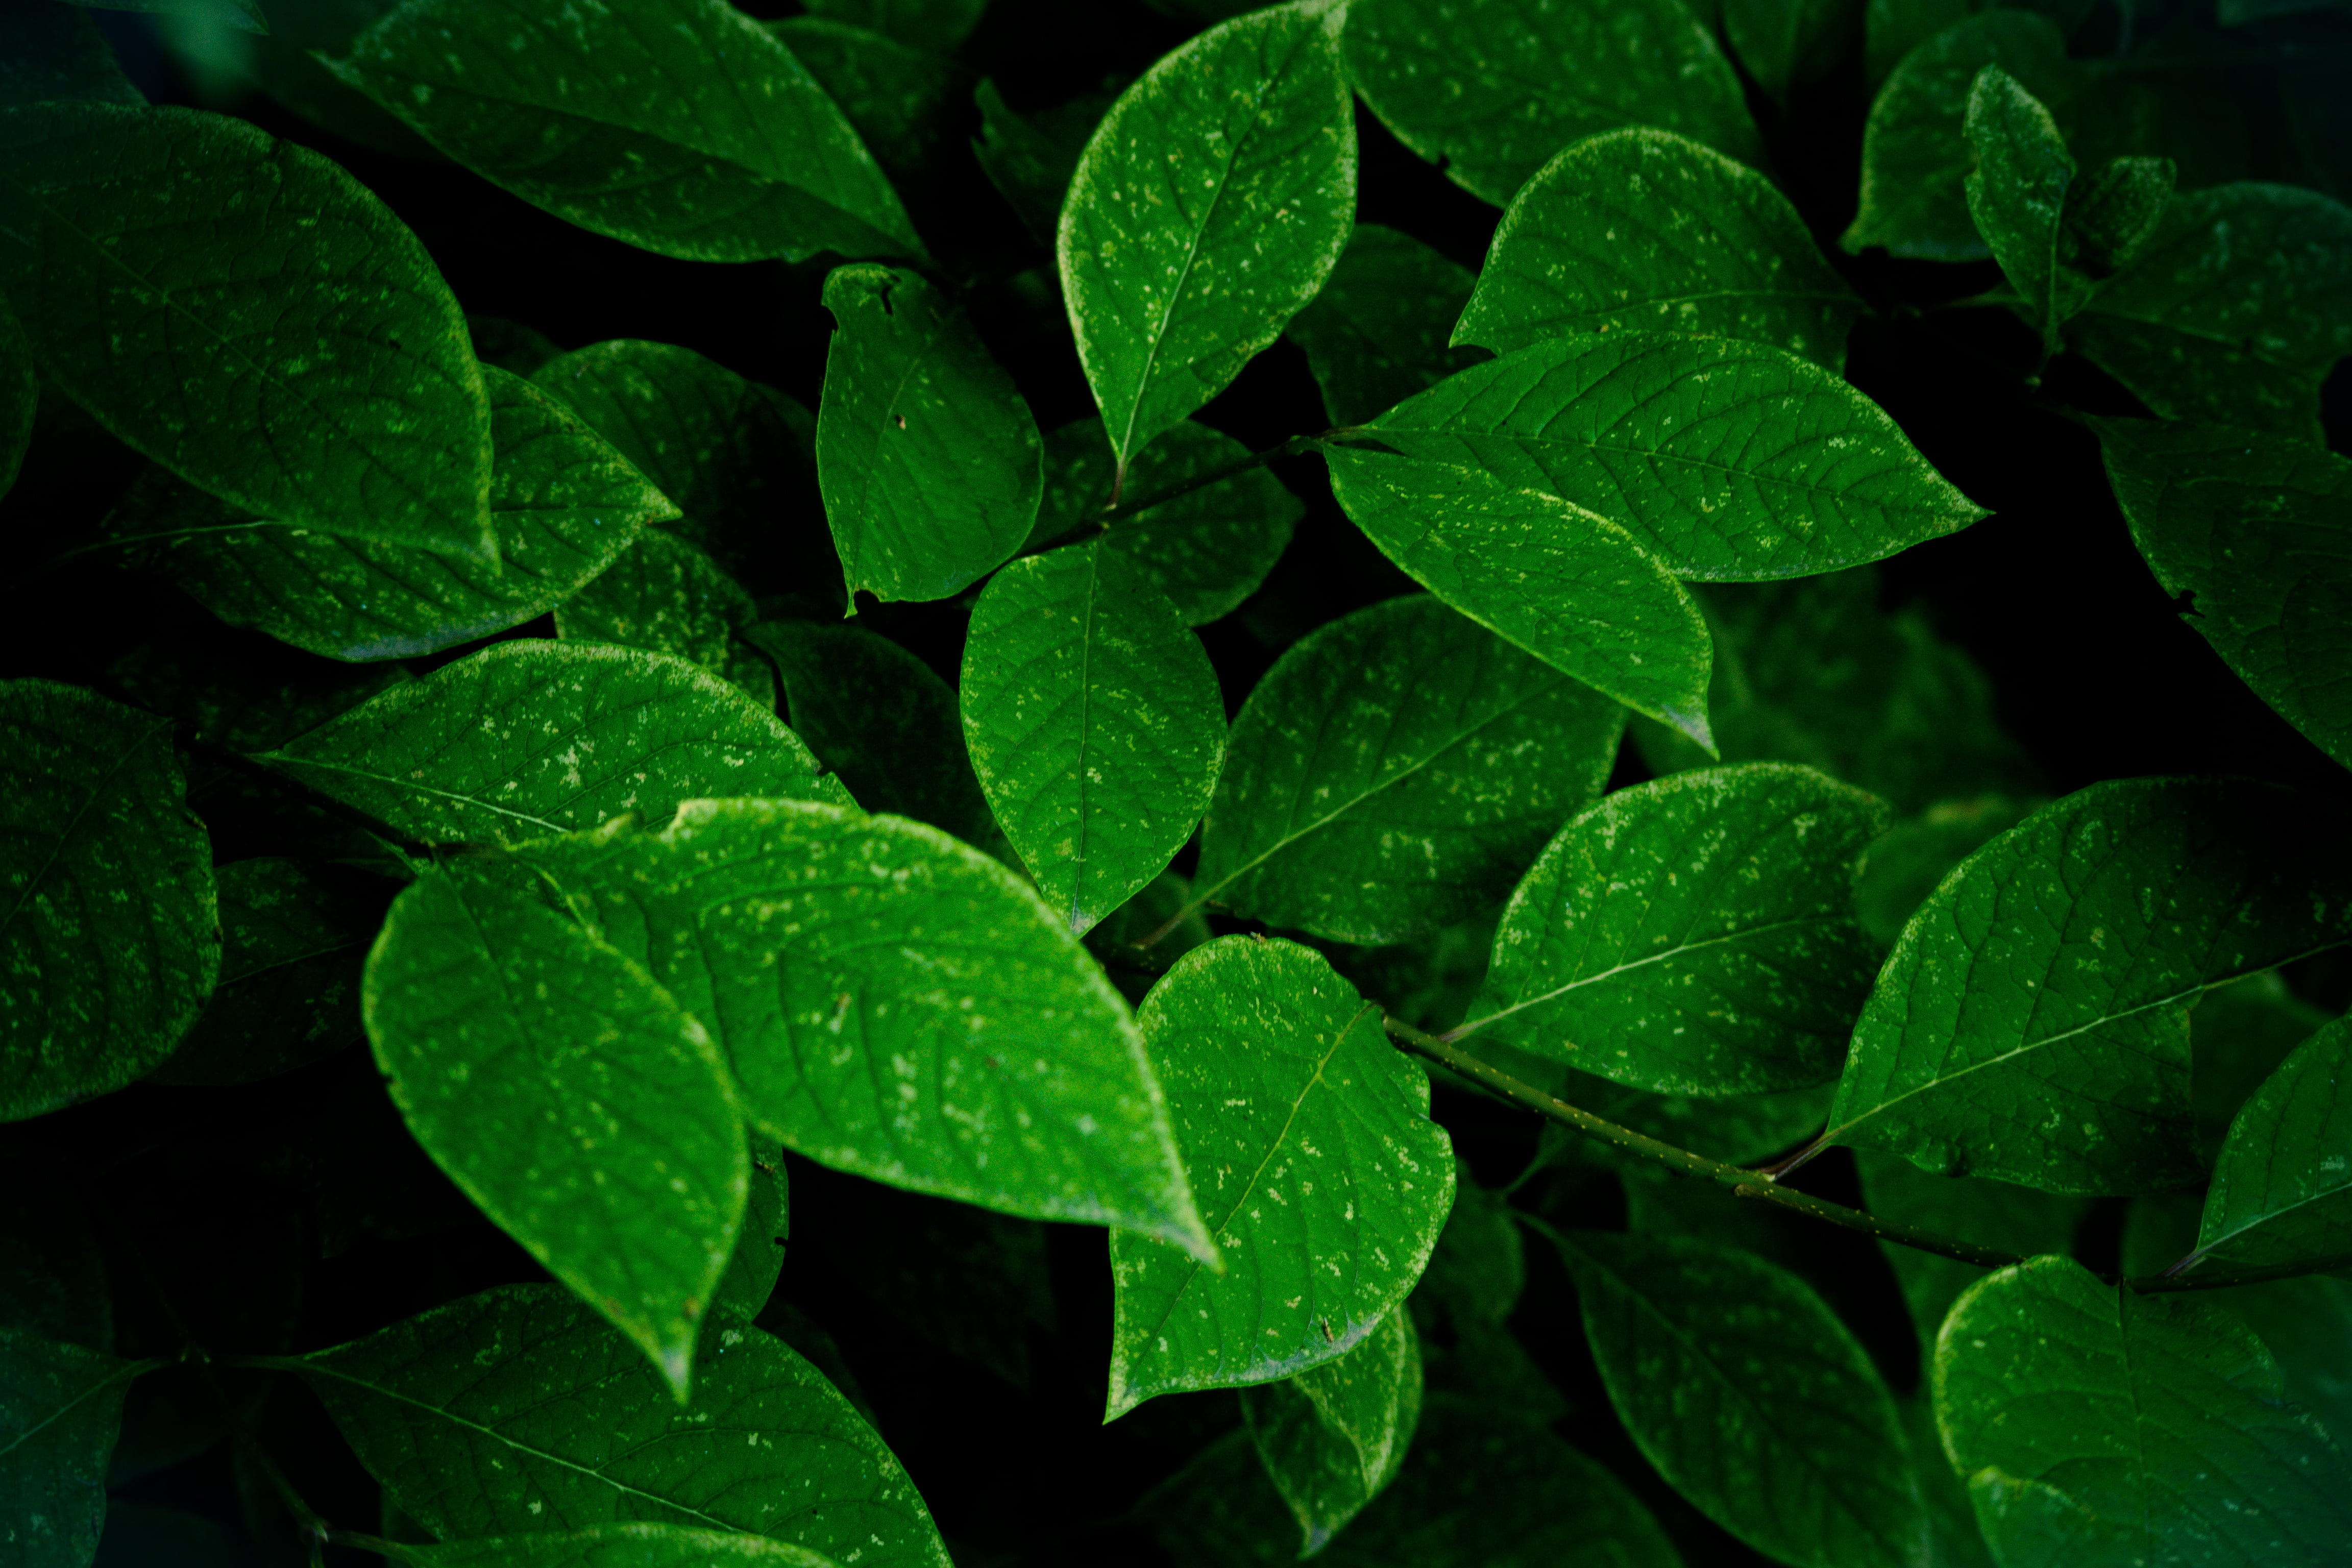 Closeup photography of green leaves HD wallpaper | Wallpaper Flare